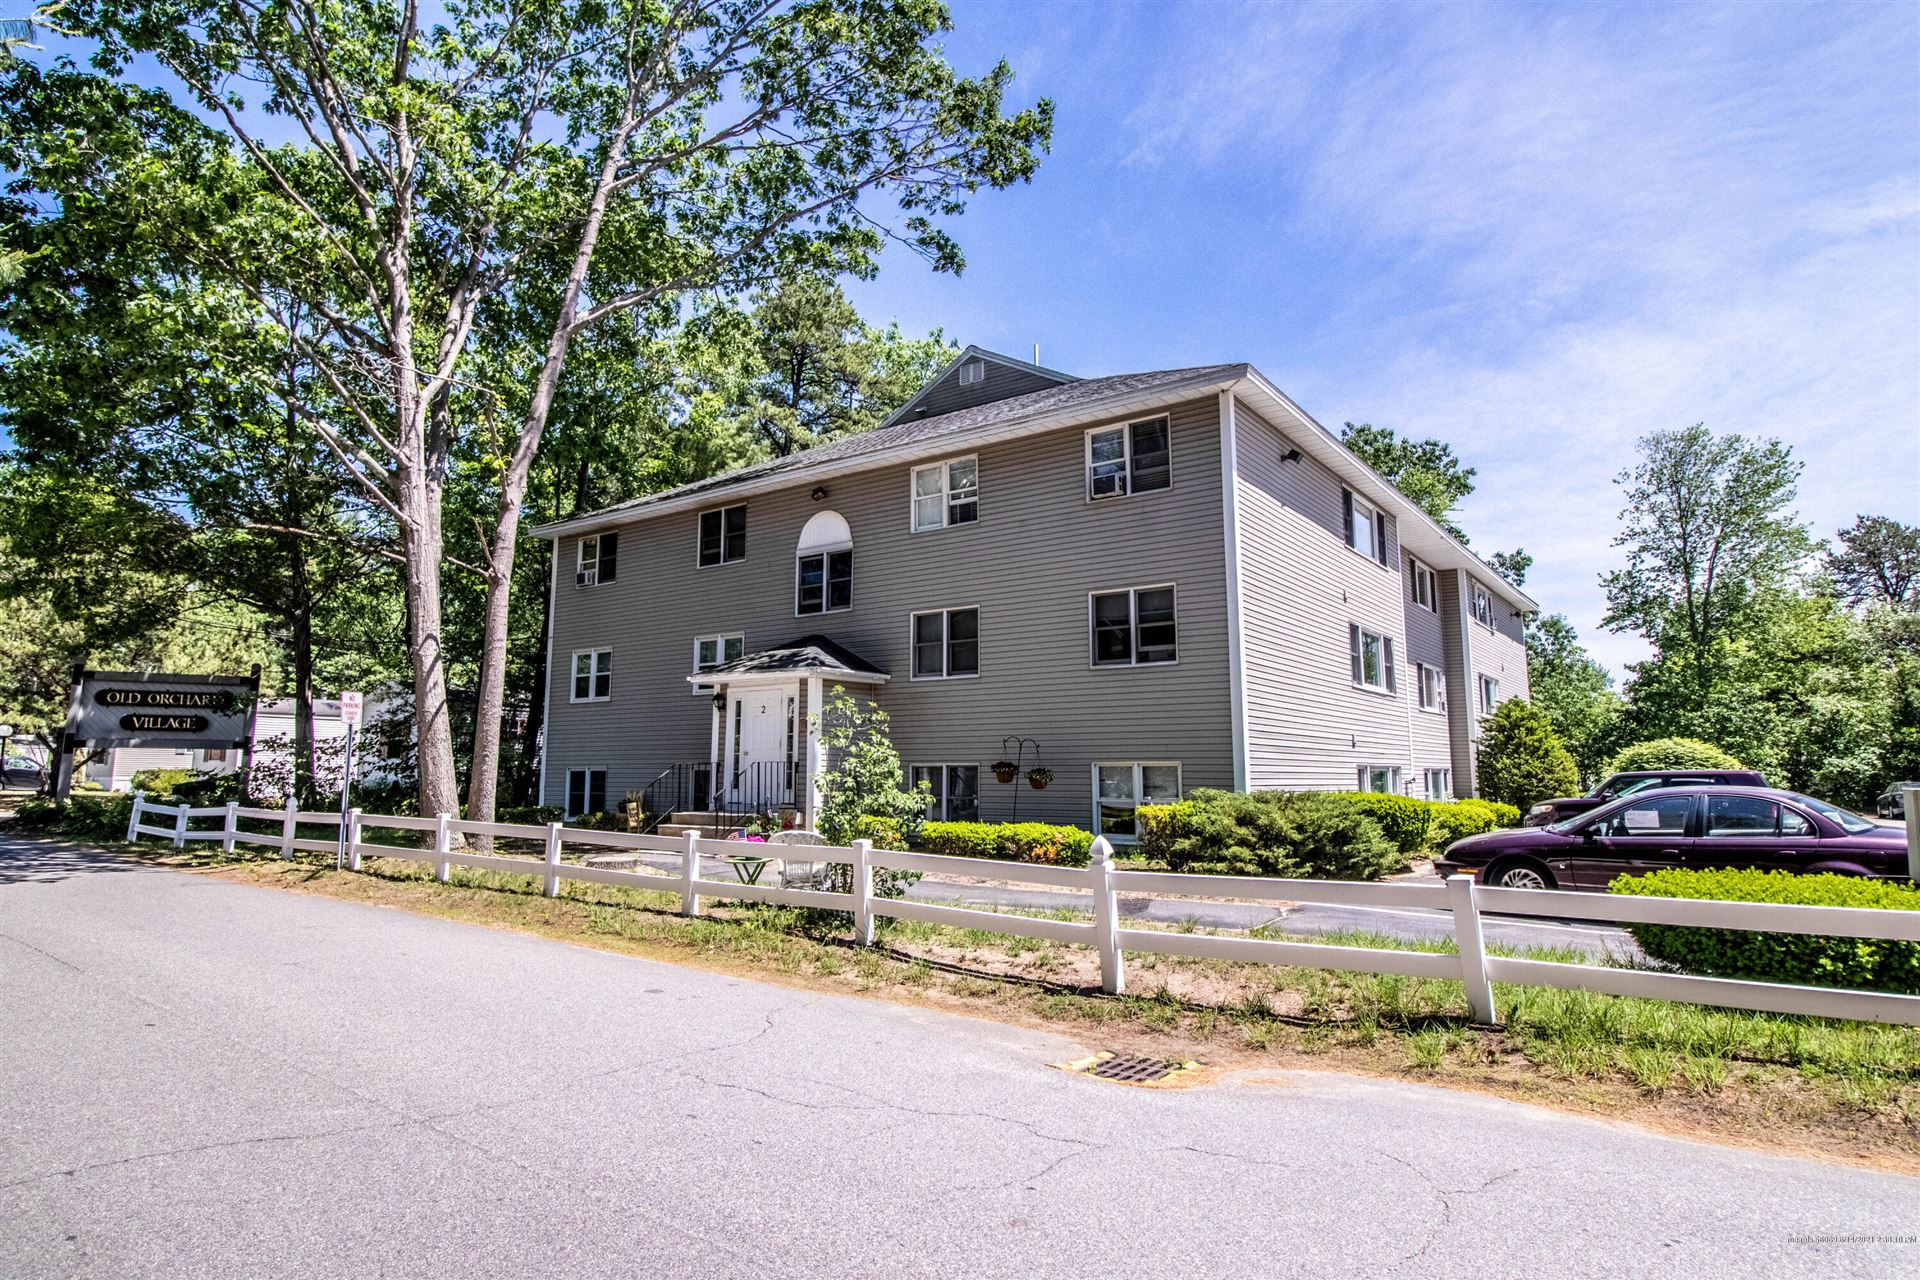 Photo of 2 Ryefield Drive #4, Old Orchard Beach, ME 04064 (MLS # 1495938)